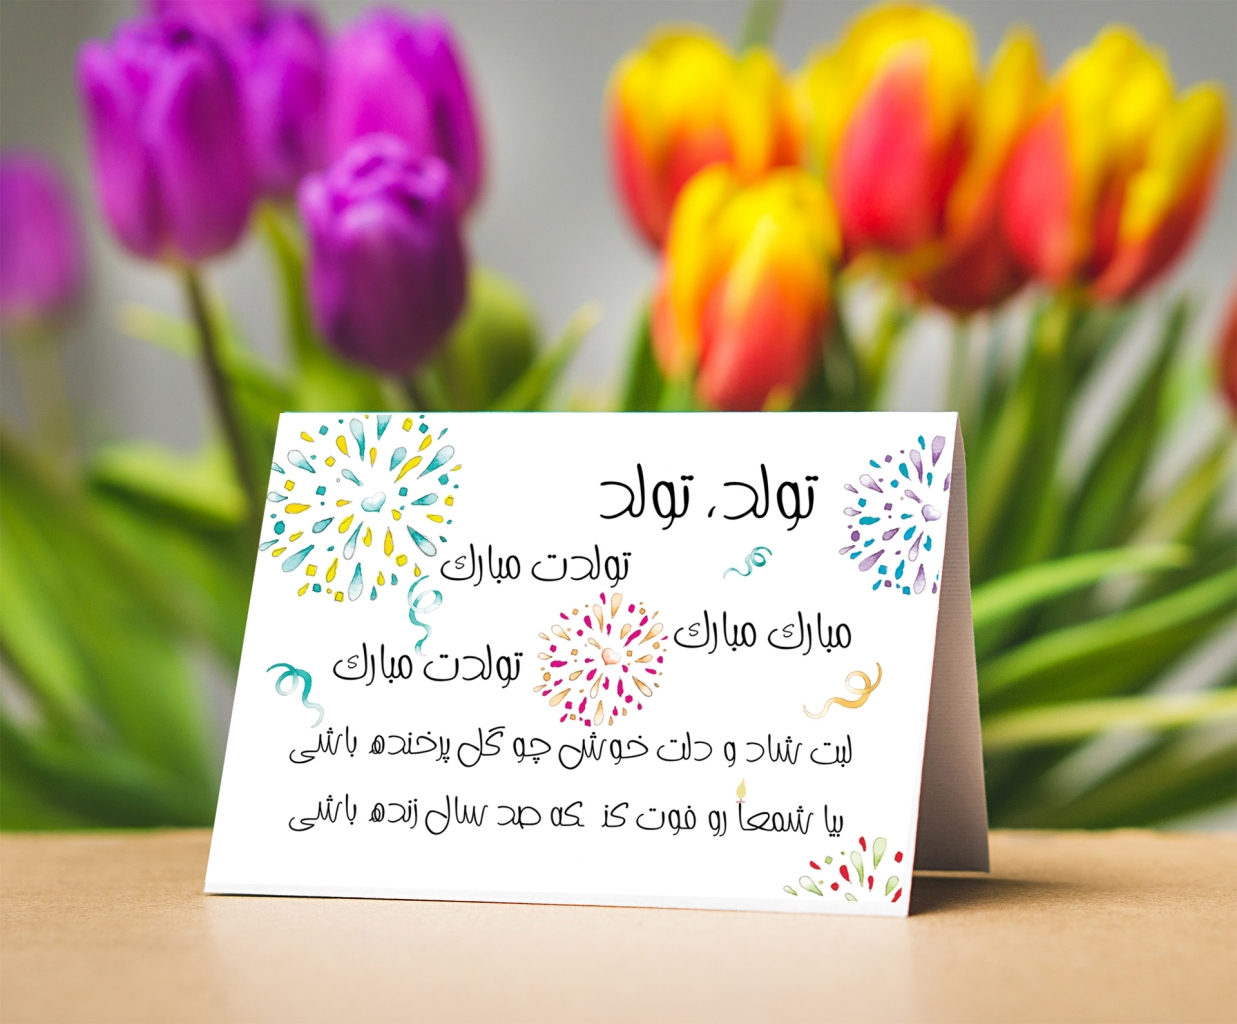 Tavalodet Mobarak In Farsi Persian Happy Birthday Poem Card A birthday can be seen as a serious or joyful time depending on one's age and one's attitude towards life. in farsi persian happy birthday poem card